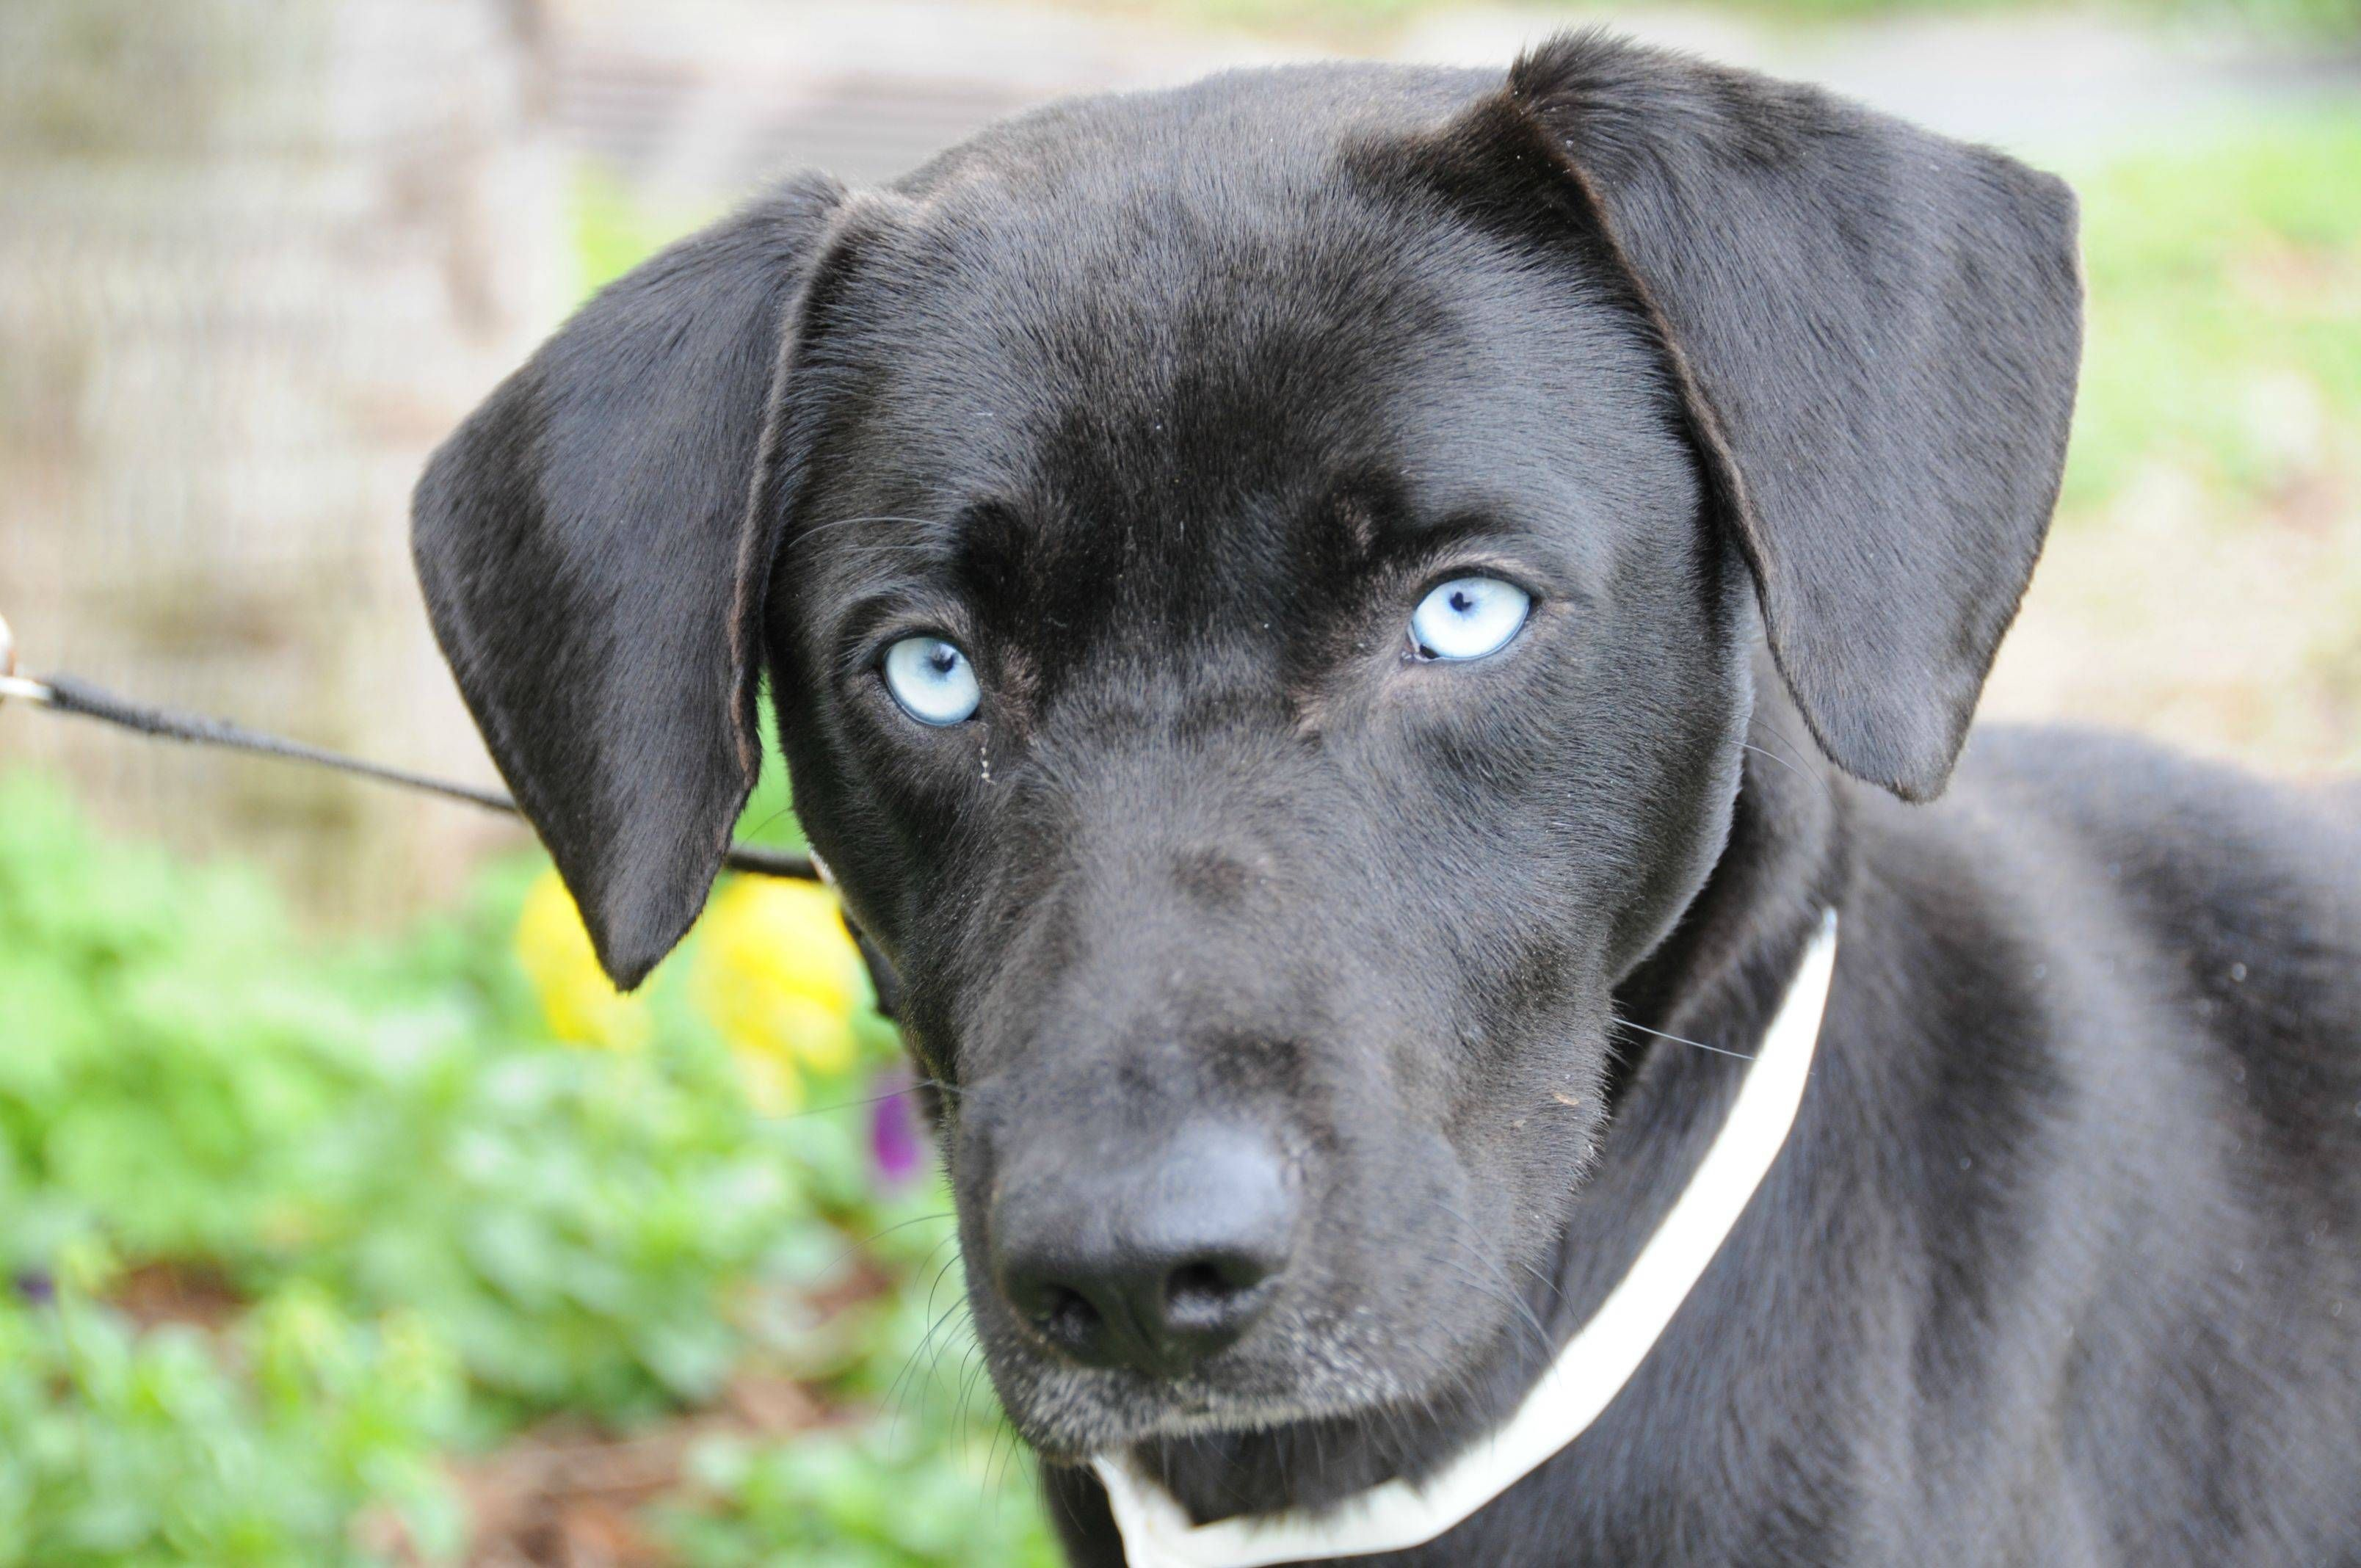 The Pup I M Fostering Black Lab With Blue Eyes Named Him Neptune What Do You Think Black Labrador Puppy Puppies With Blue Eyes Lab Dogs